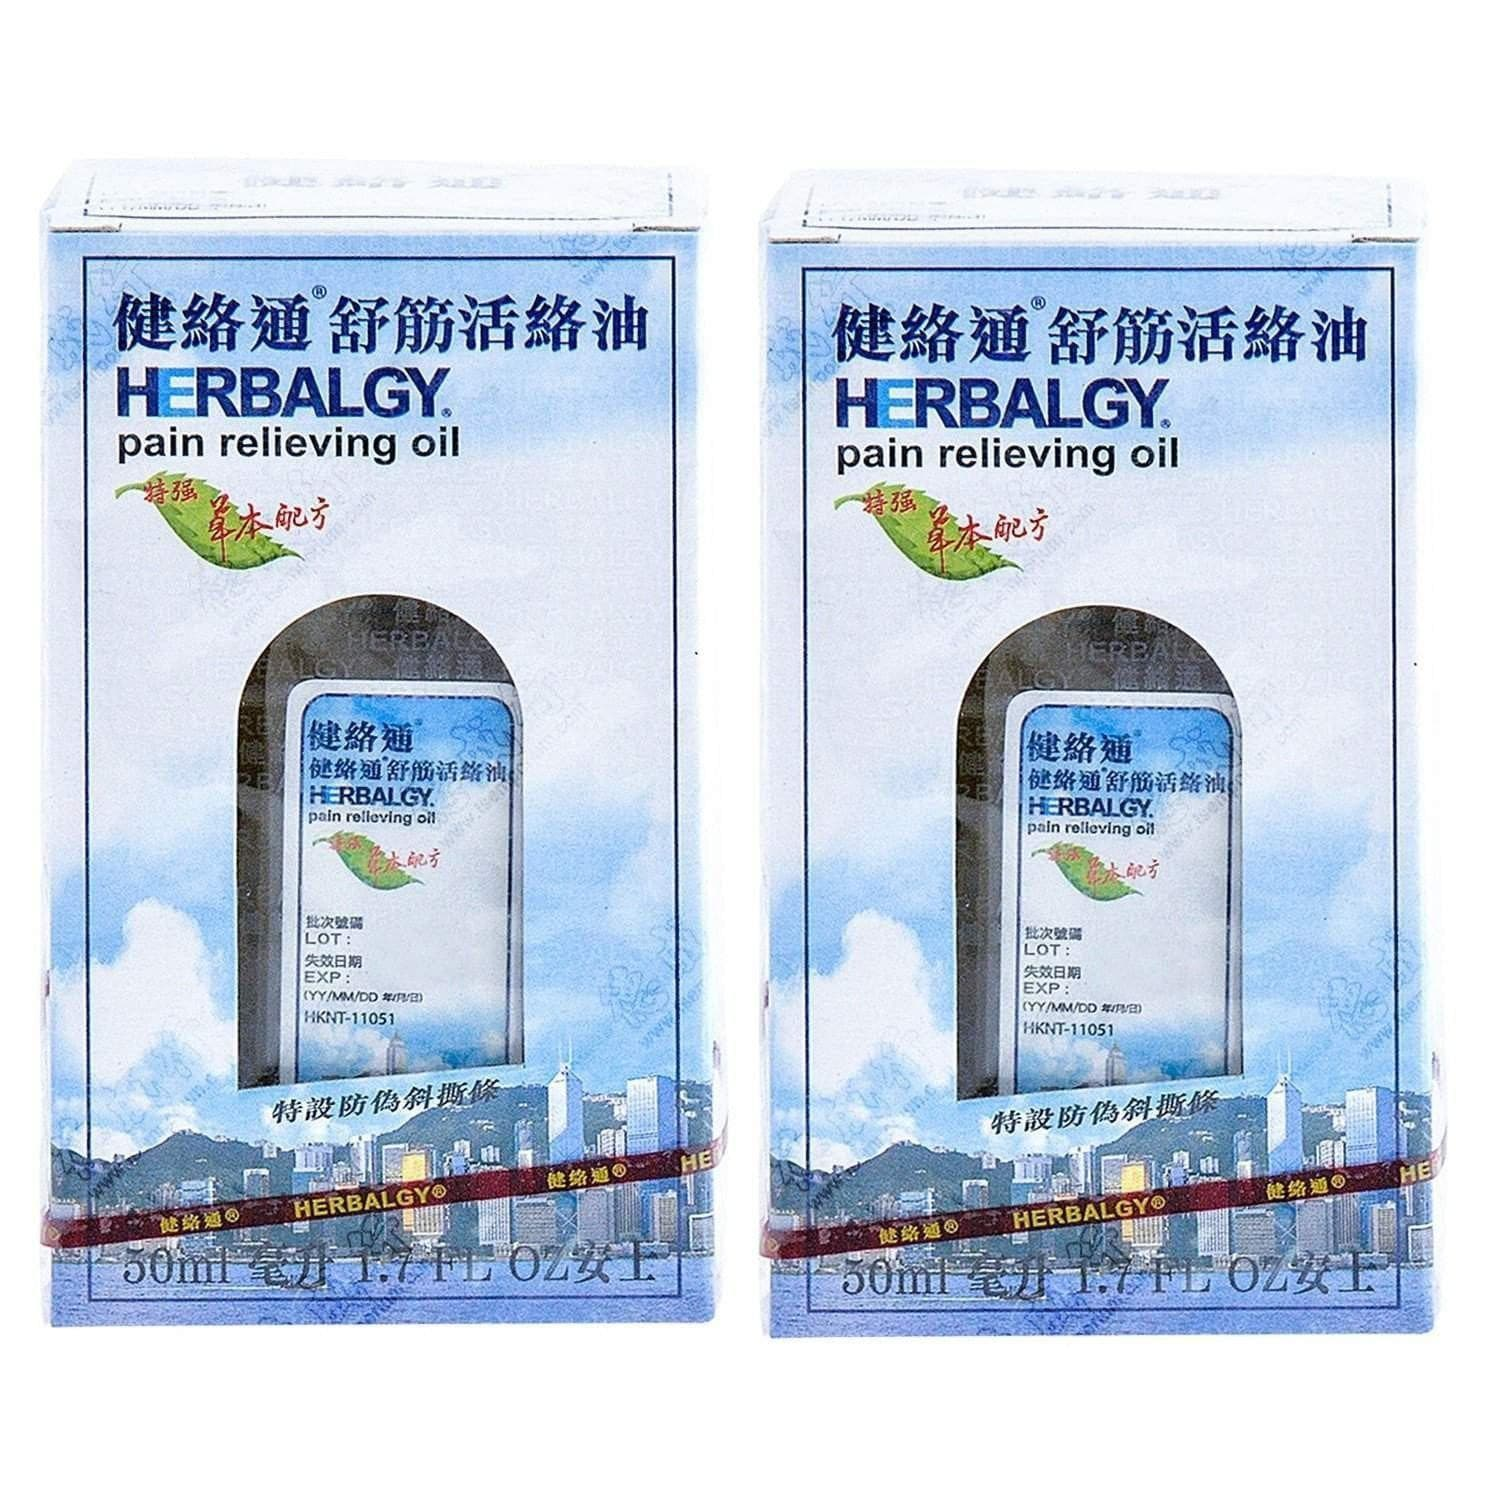 2 Boxes Herbalgy Pain Relieving Oil (50ml)-Herbalgy